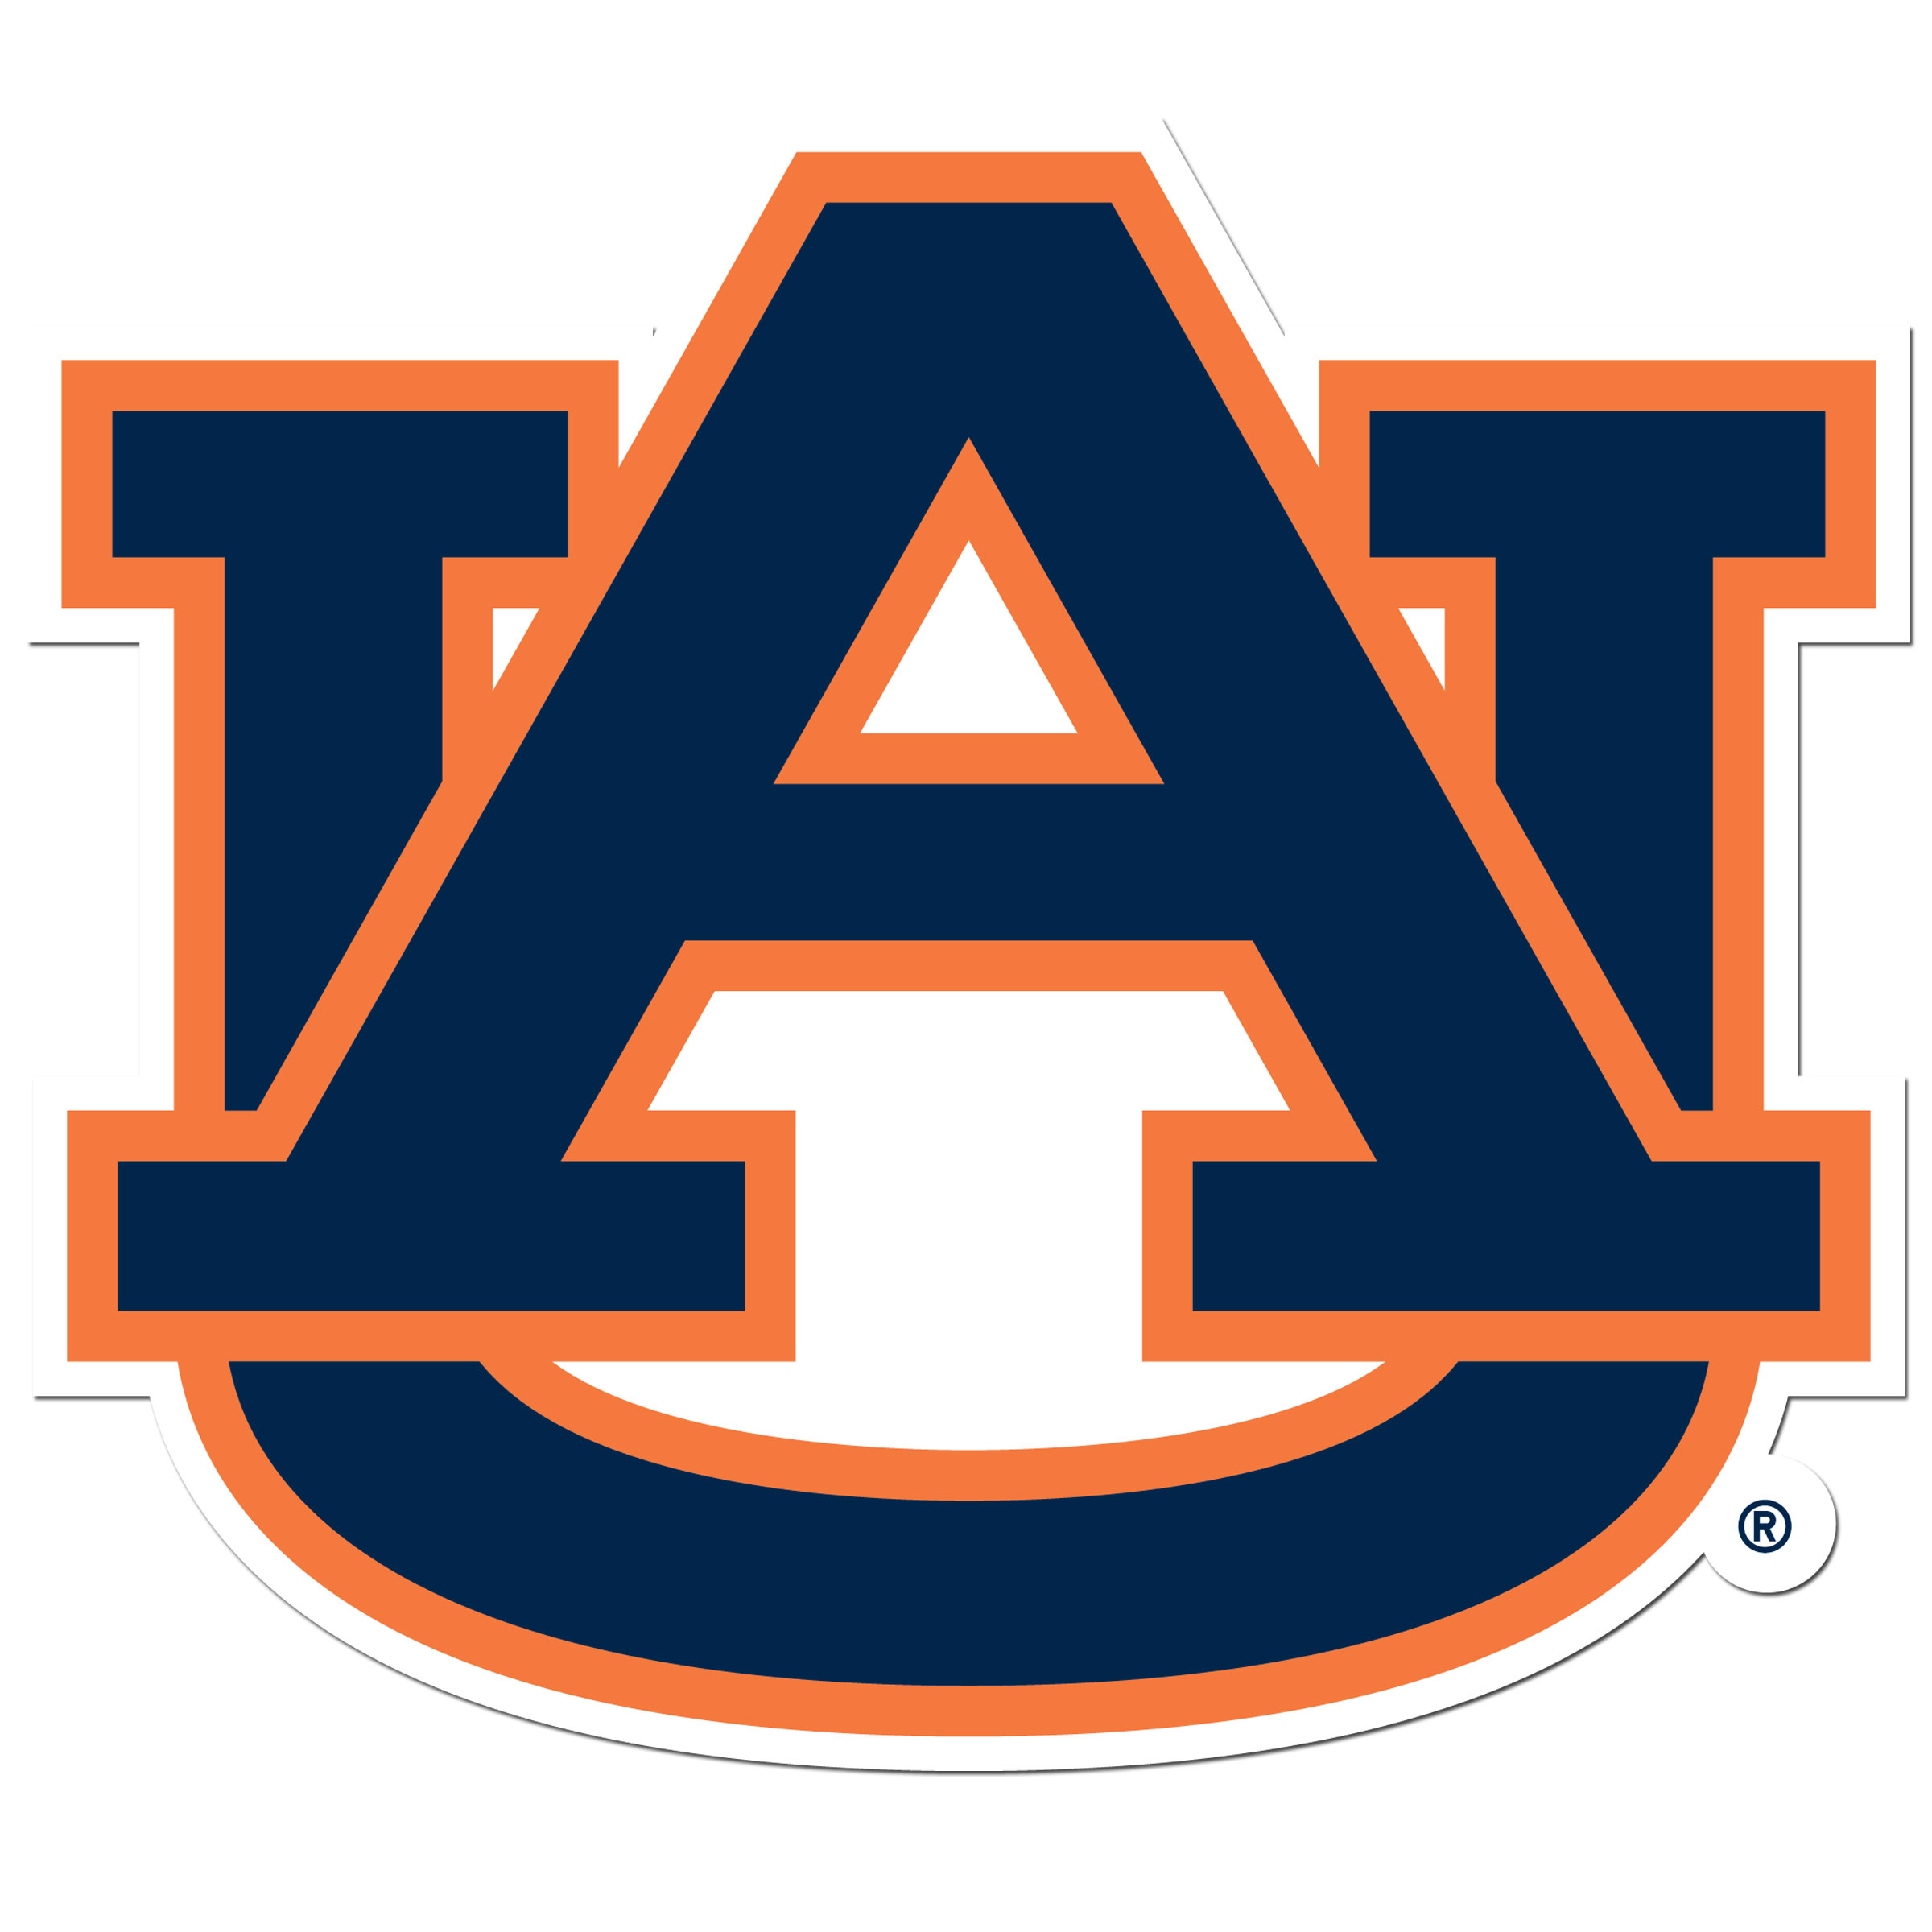 Auburn Tigers 8 inch Auto Decal - This bold, 8 inch Auburn Tigers is a great way to show off your team pride! The low tack vinyl decal is easily positioned and adjusted to make sure you get that logo in just the right spot on your vehicle. Designed to be used on the outside of the window.